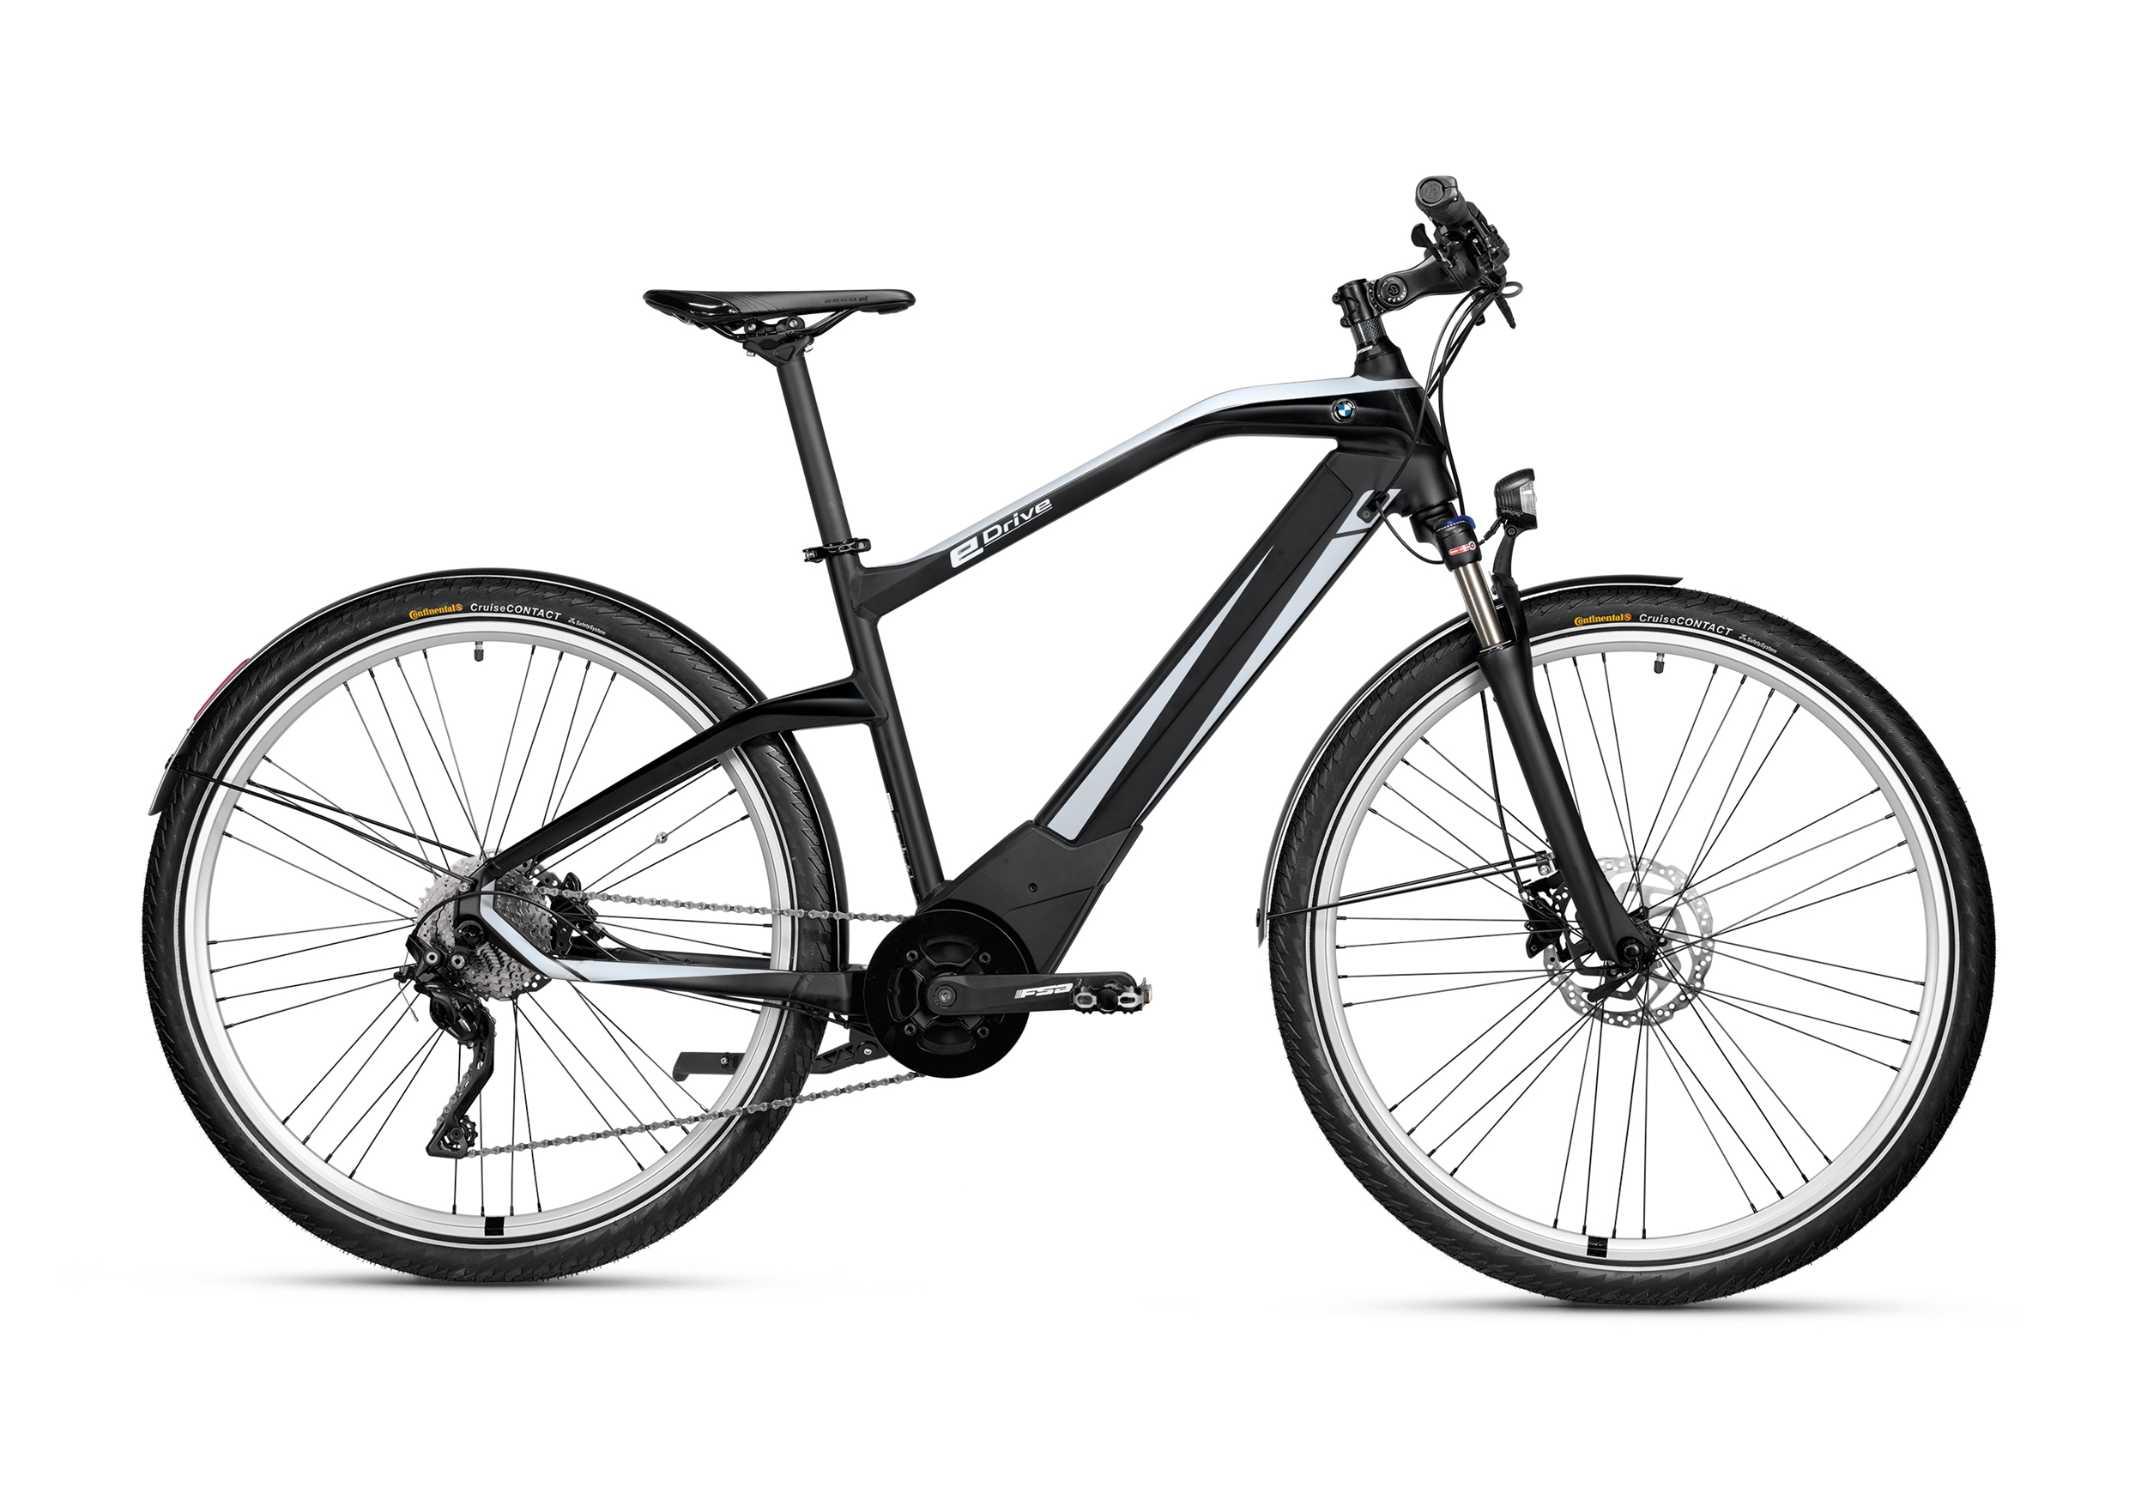 Electric Elegant Unique The New Bmw Active Hybrid E Bike With Powerful High Performance Battery Integrated Fully Into The Frame Innovative Saddle Designed Specifically For E Bikes Provides Comfort Safety And Electrifying Riding Pleasure